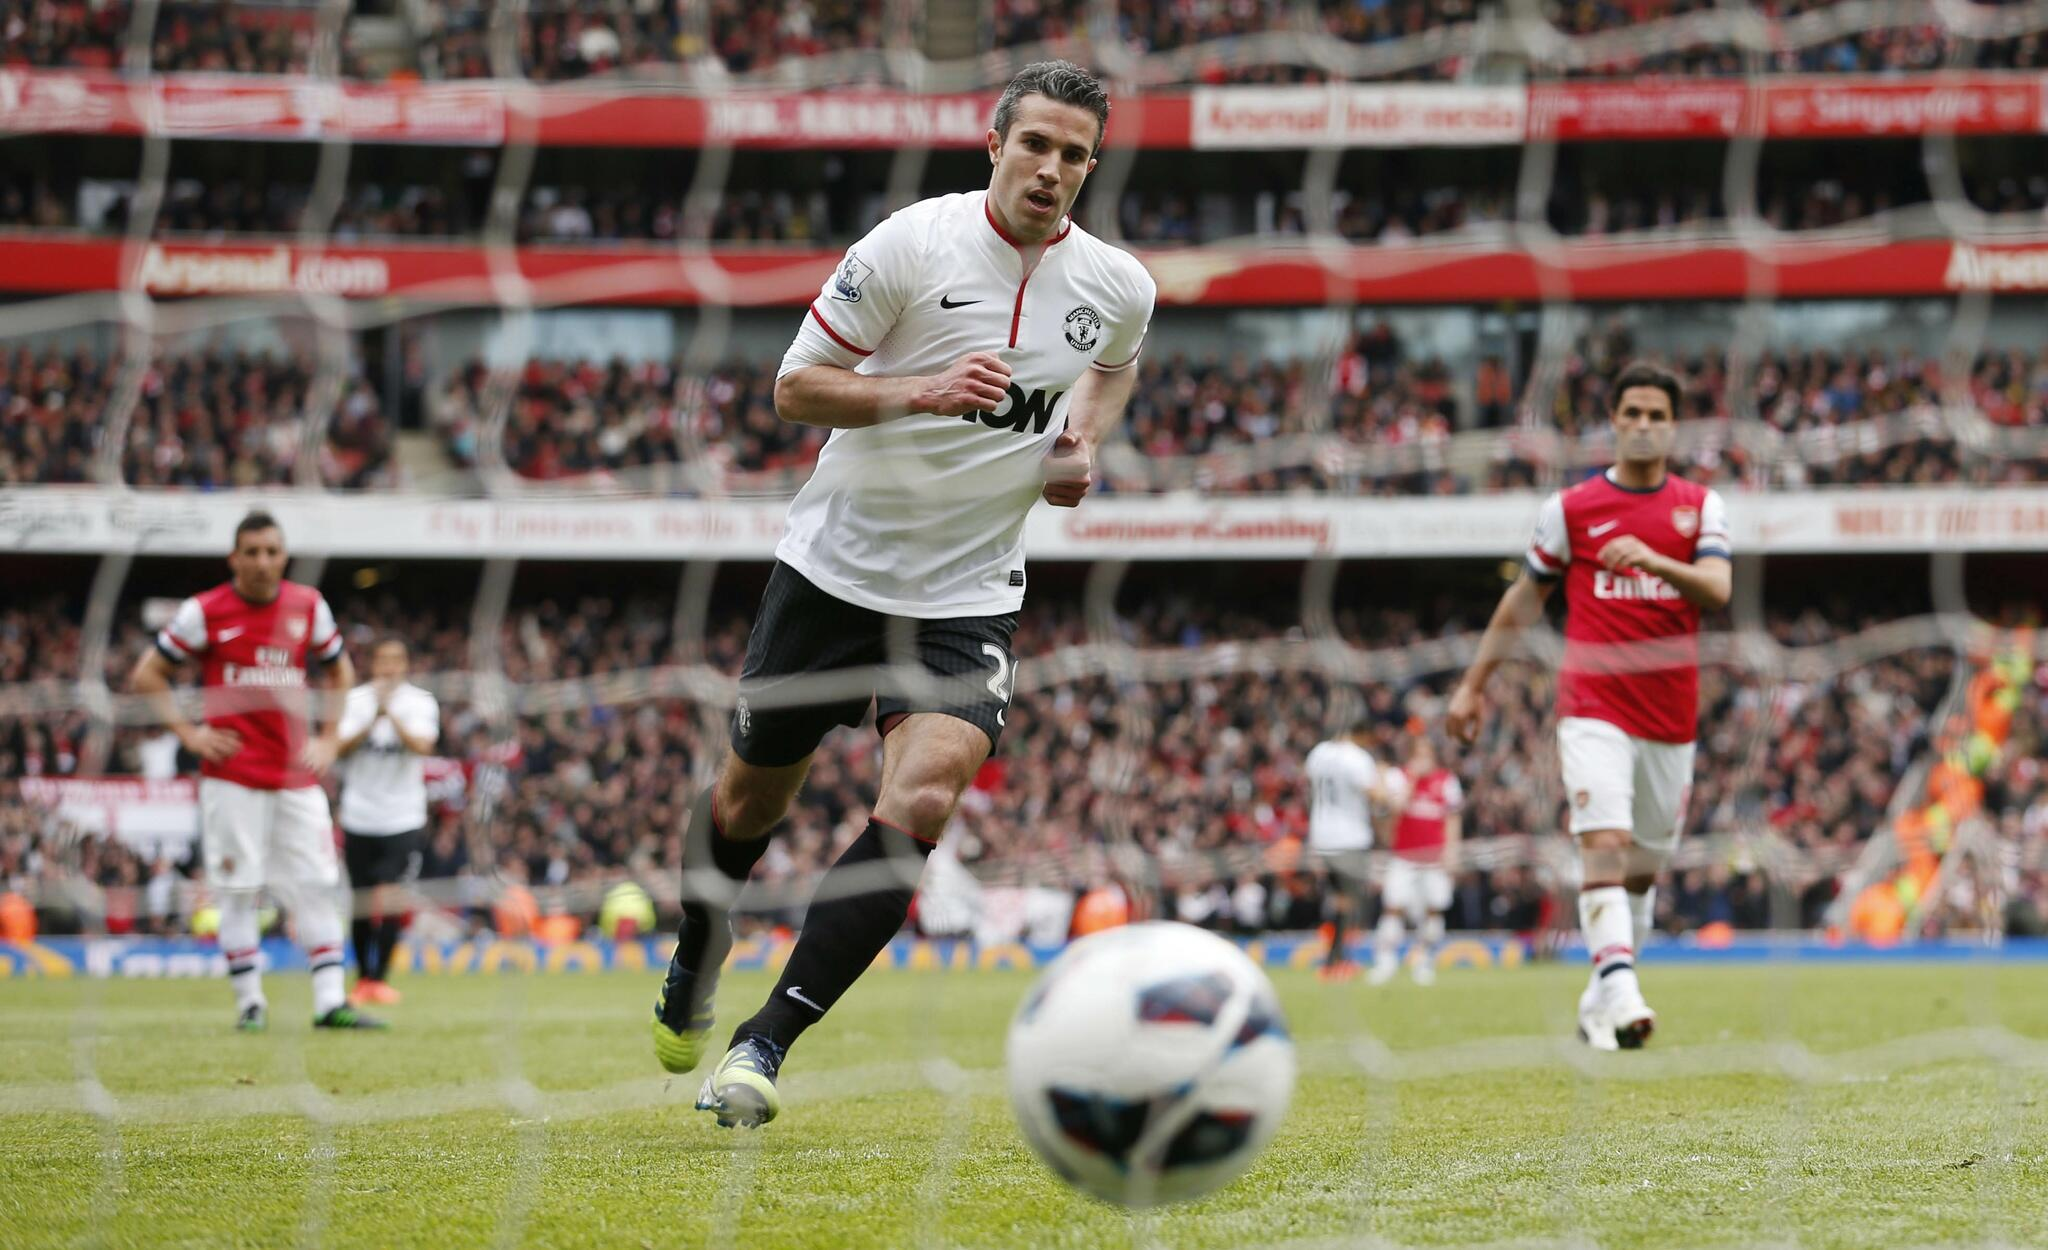 FULL-TIME Arsenal 1-1 Man Utd. Robin van Persie's penalty earns a draw for the #BPL champions against his former side http://t.co/S8d2w12L2j